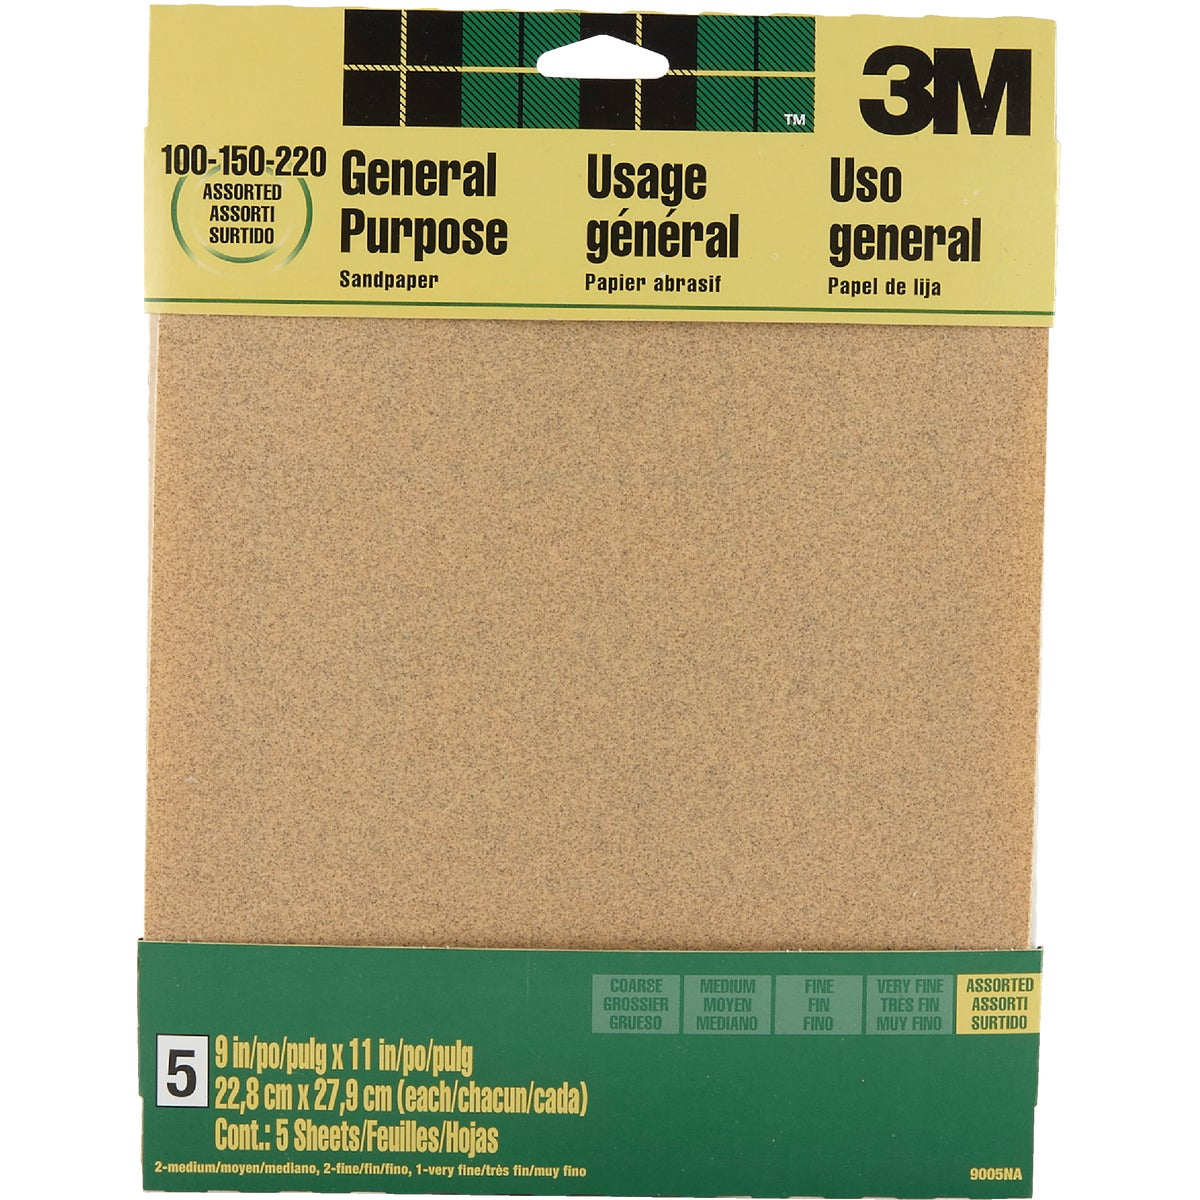 5PK ASTD SANDPAPER - 9005 by 3m Co